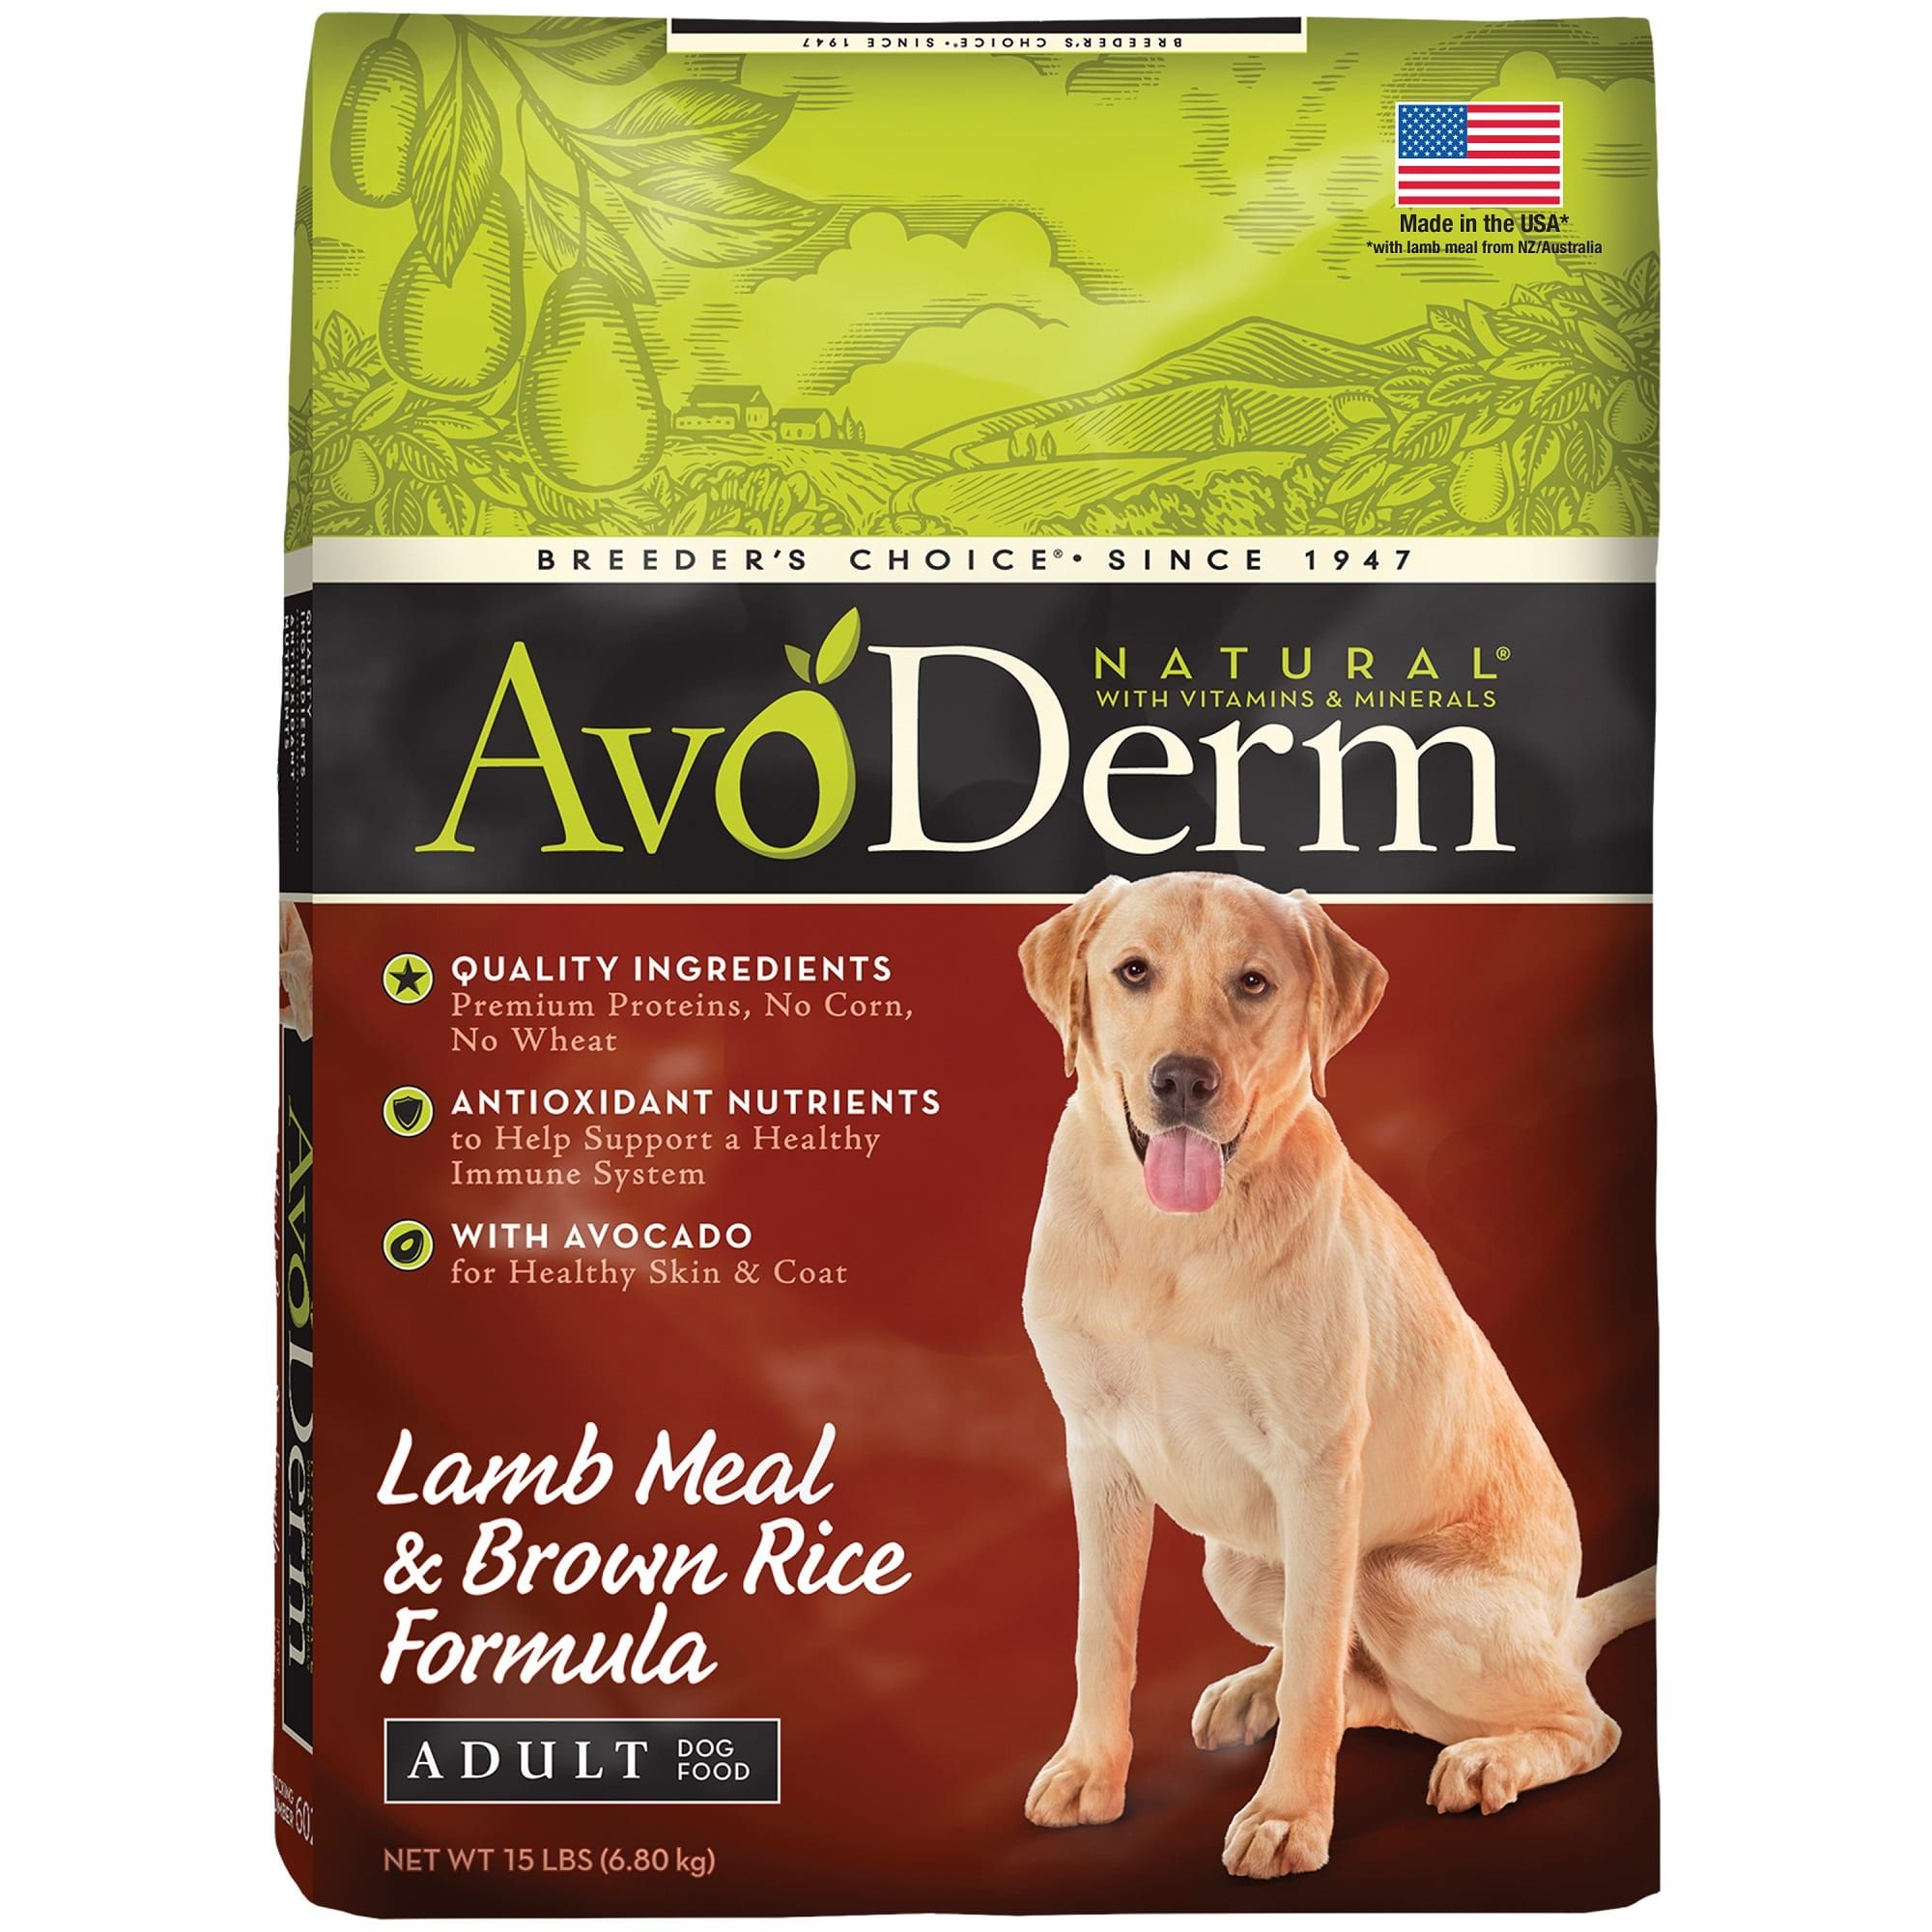 Avoderm Natural Lamb Meal Brown Rice Formula Dry Dog Food 15